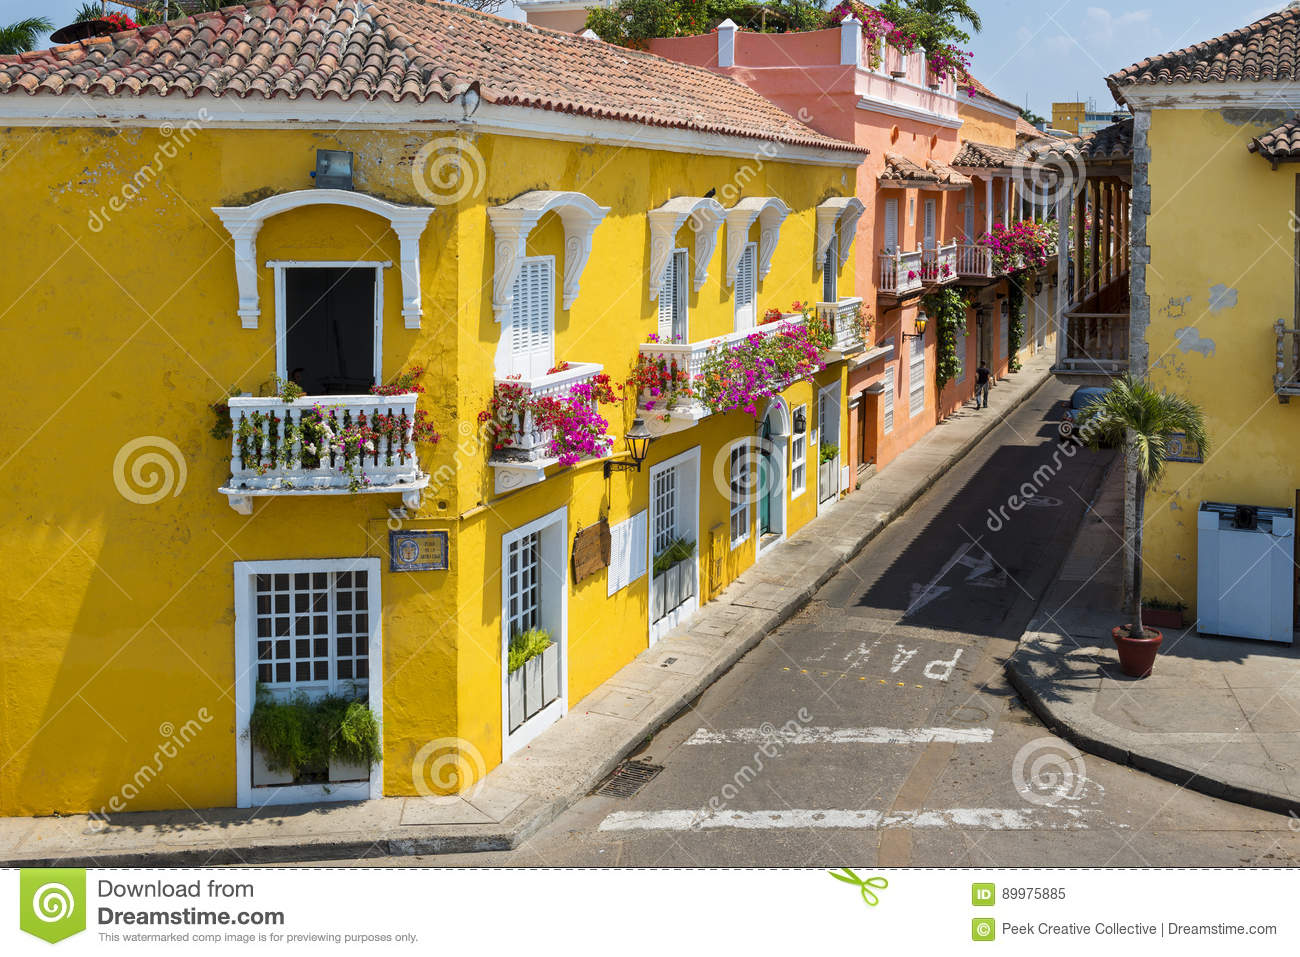 Colorful buildings in a street of the old city of Cartagena Cartagena de Indias in Colombia